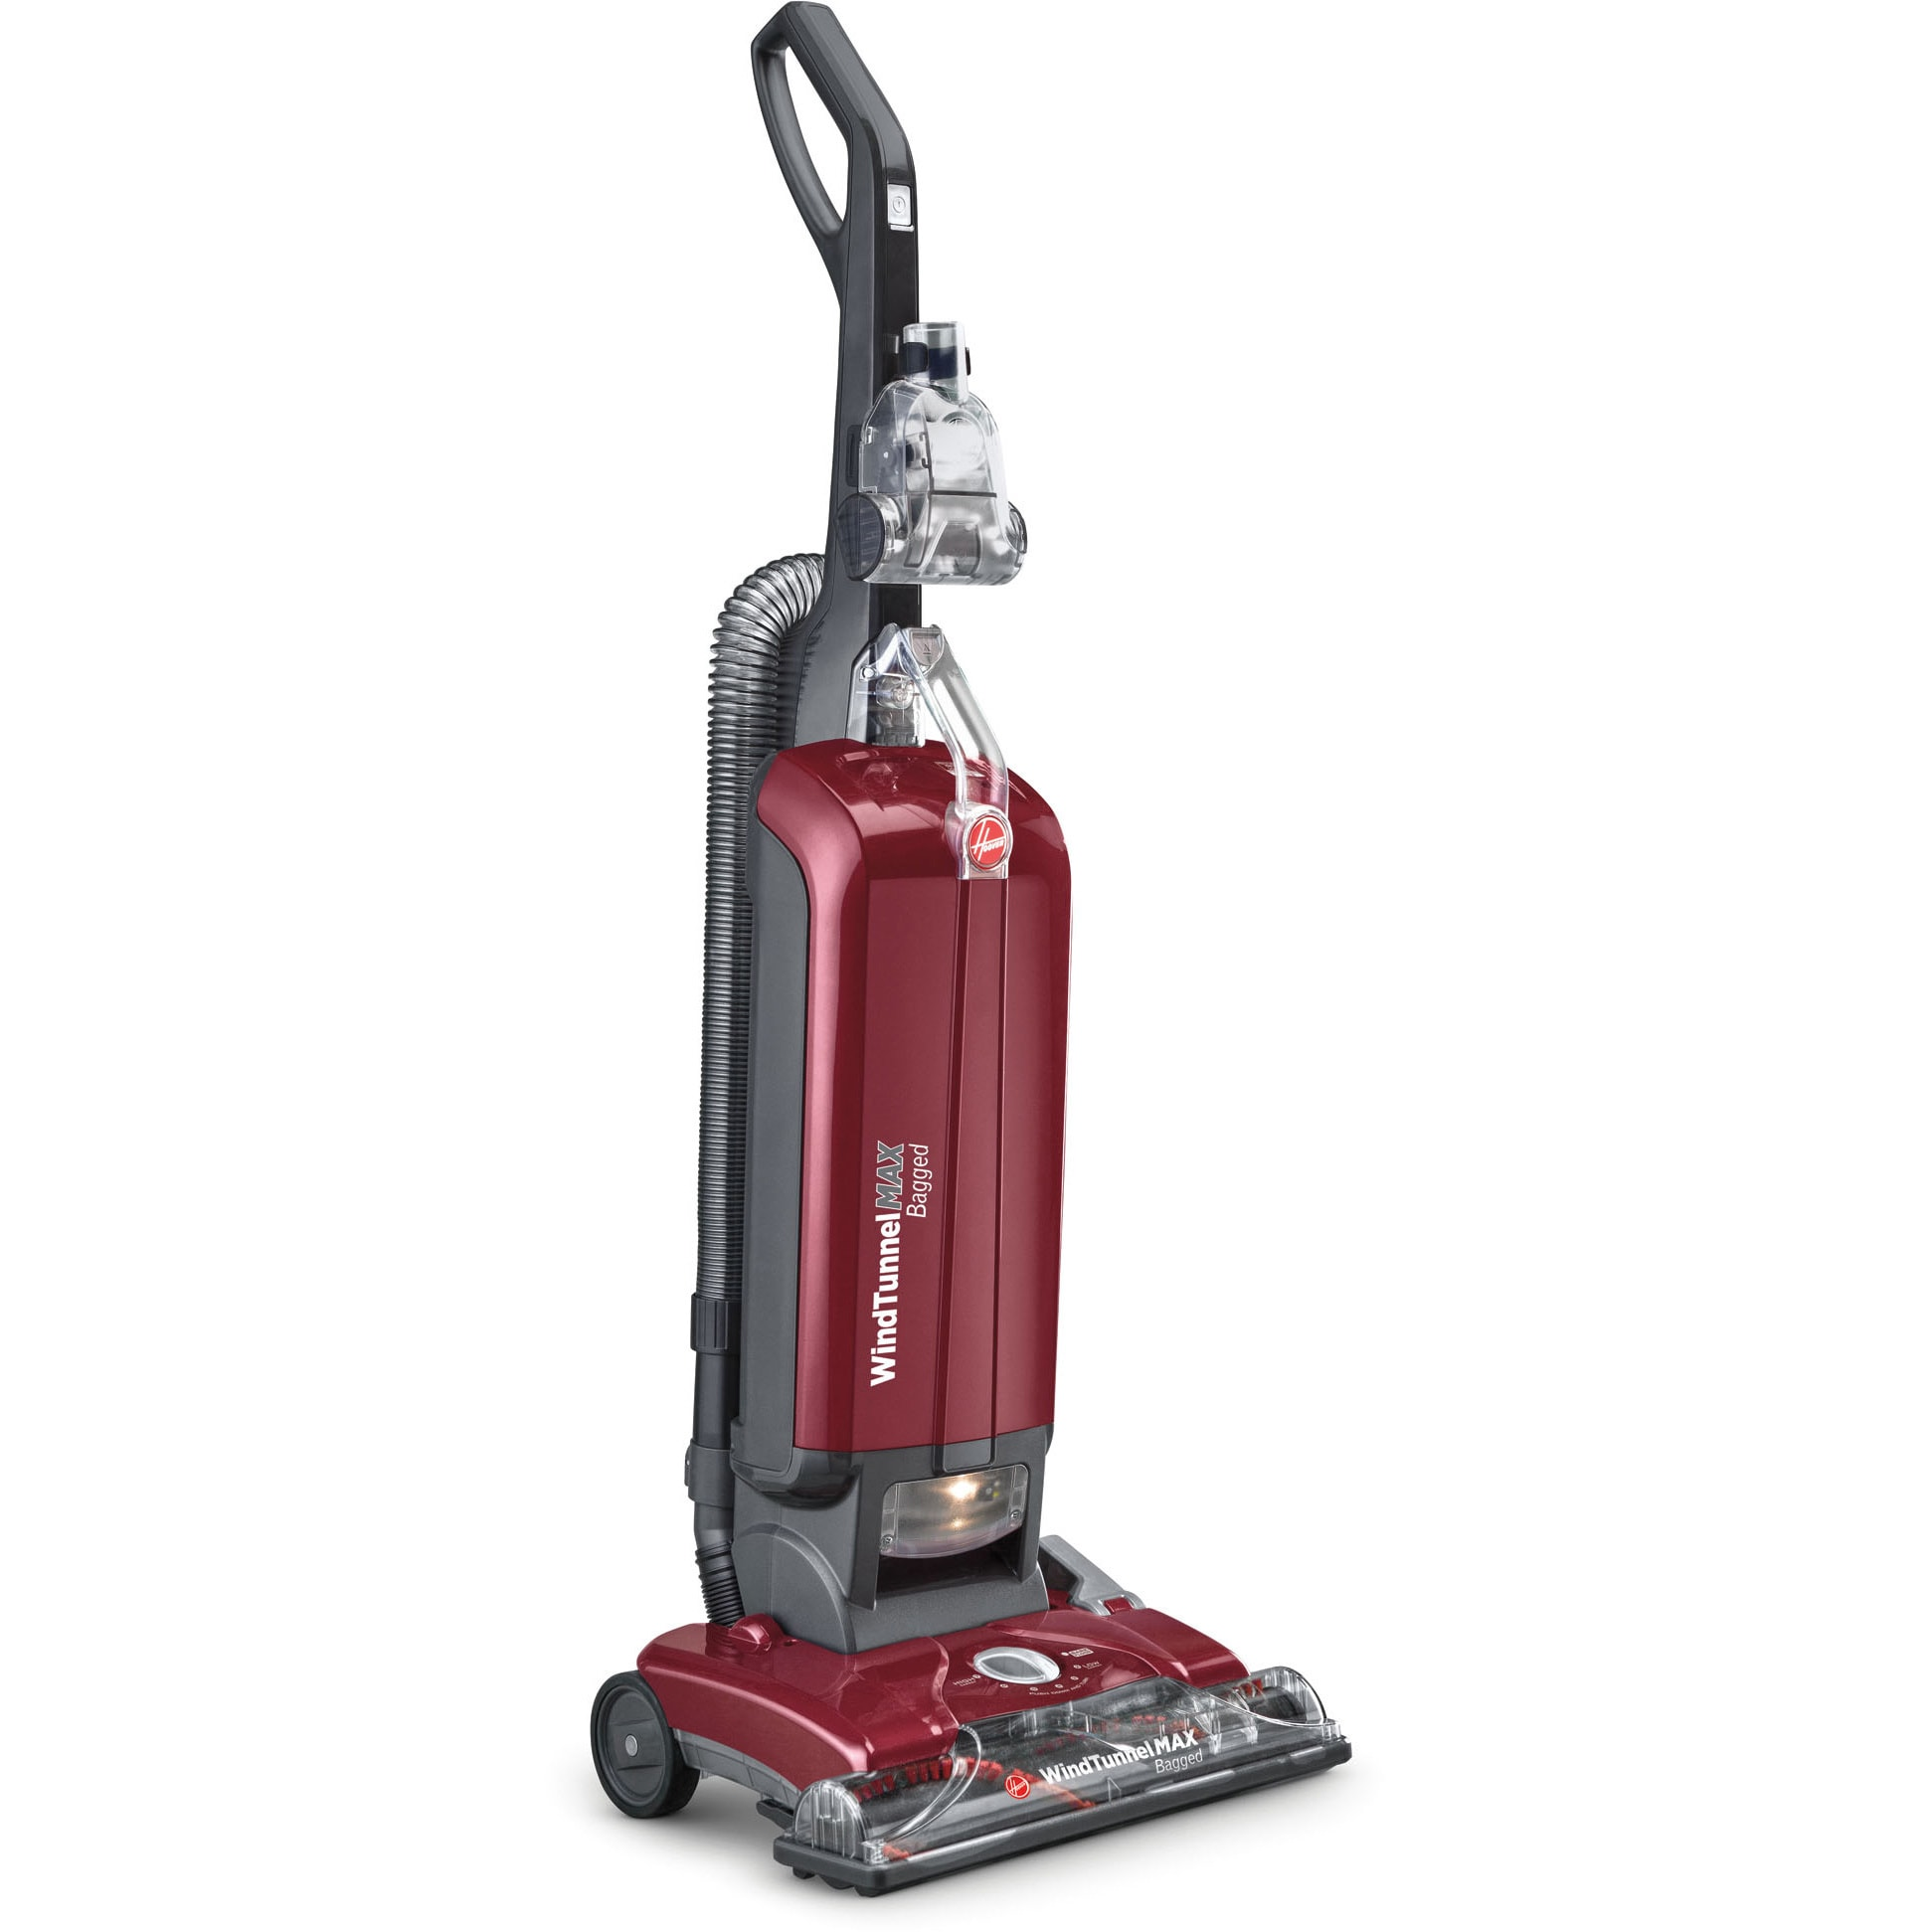 Hoover UH30600 WindTunnel Max Bagged Upright Vacuum, Red